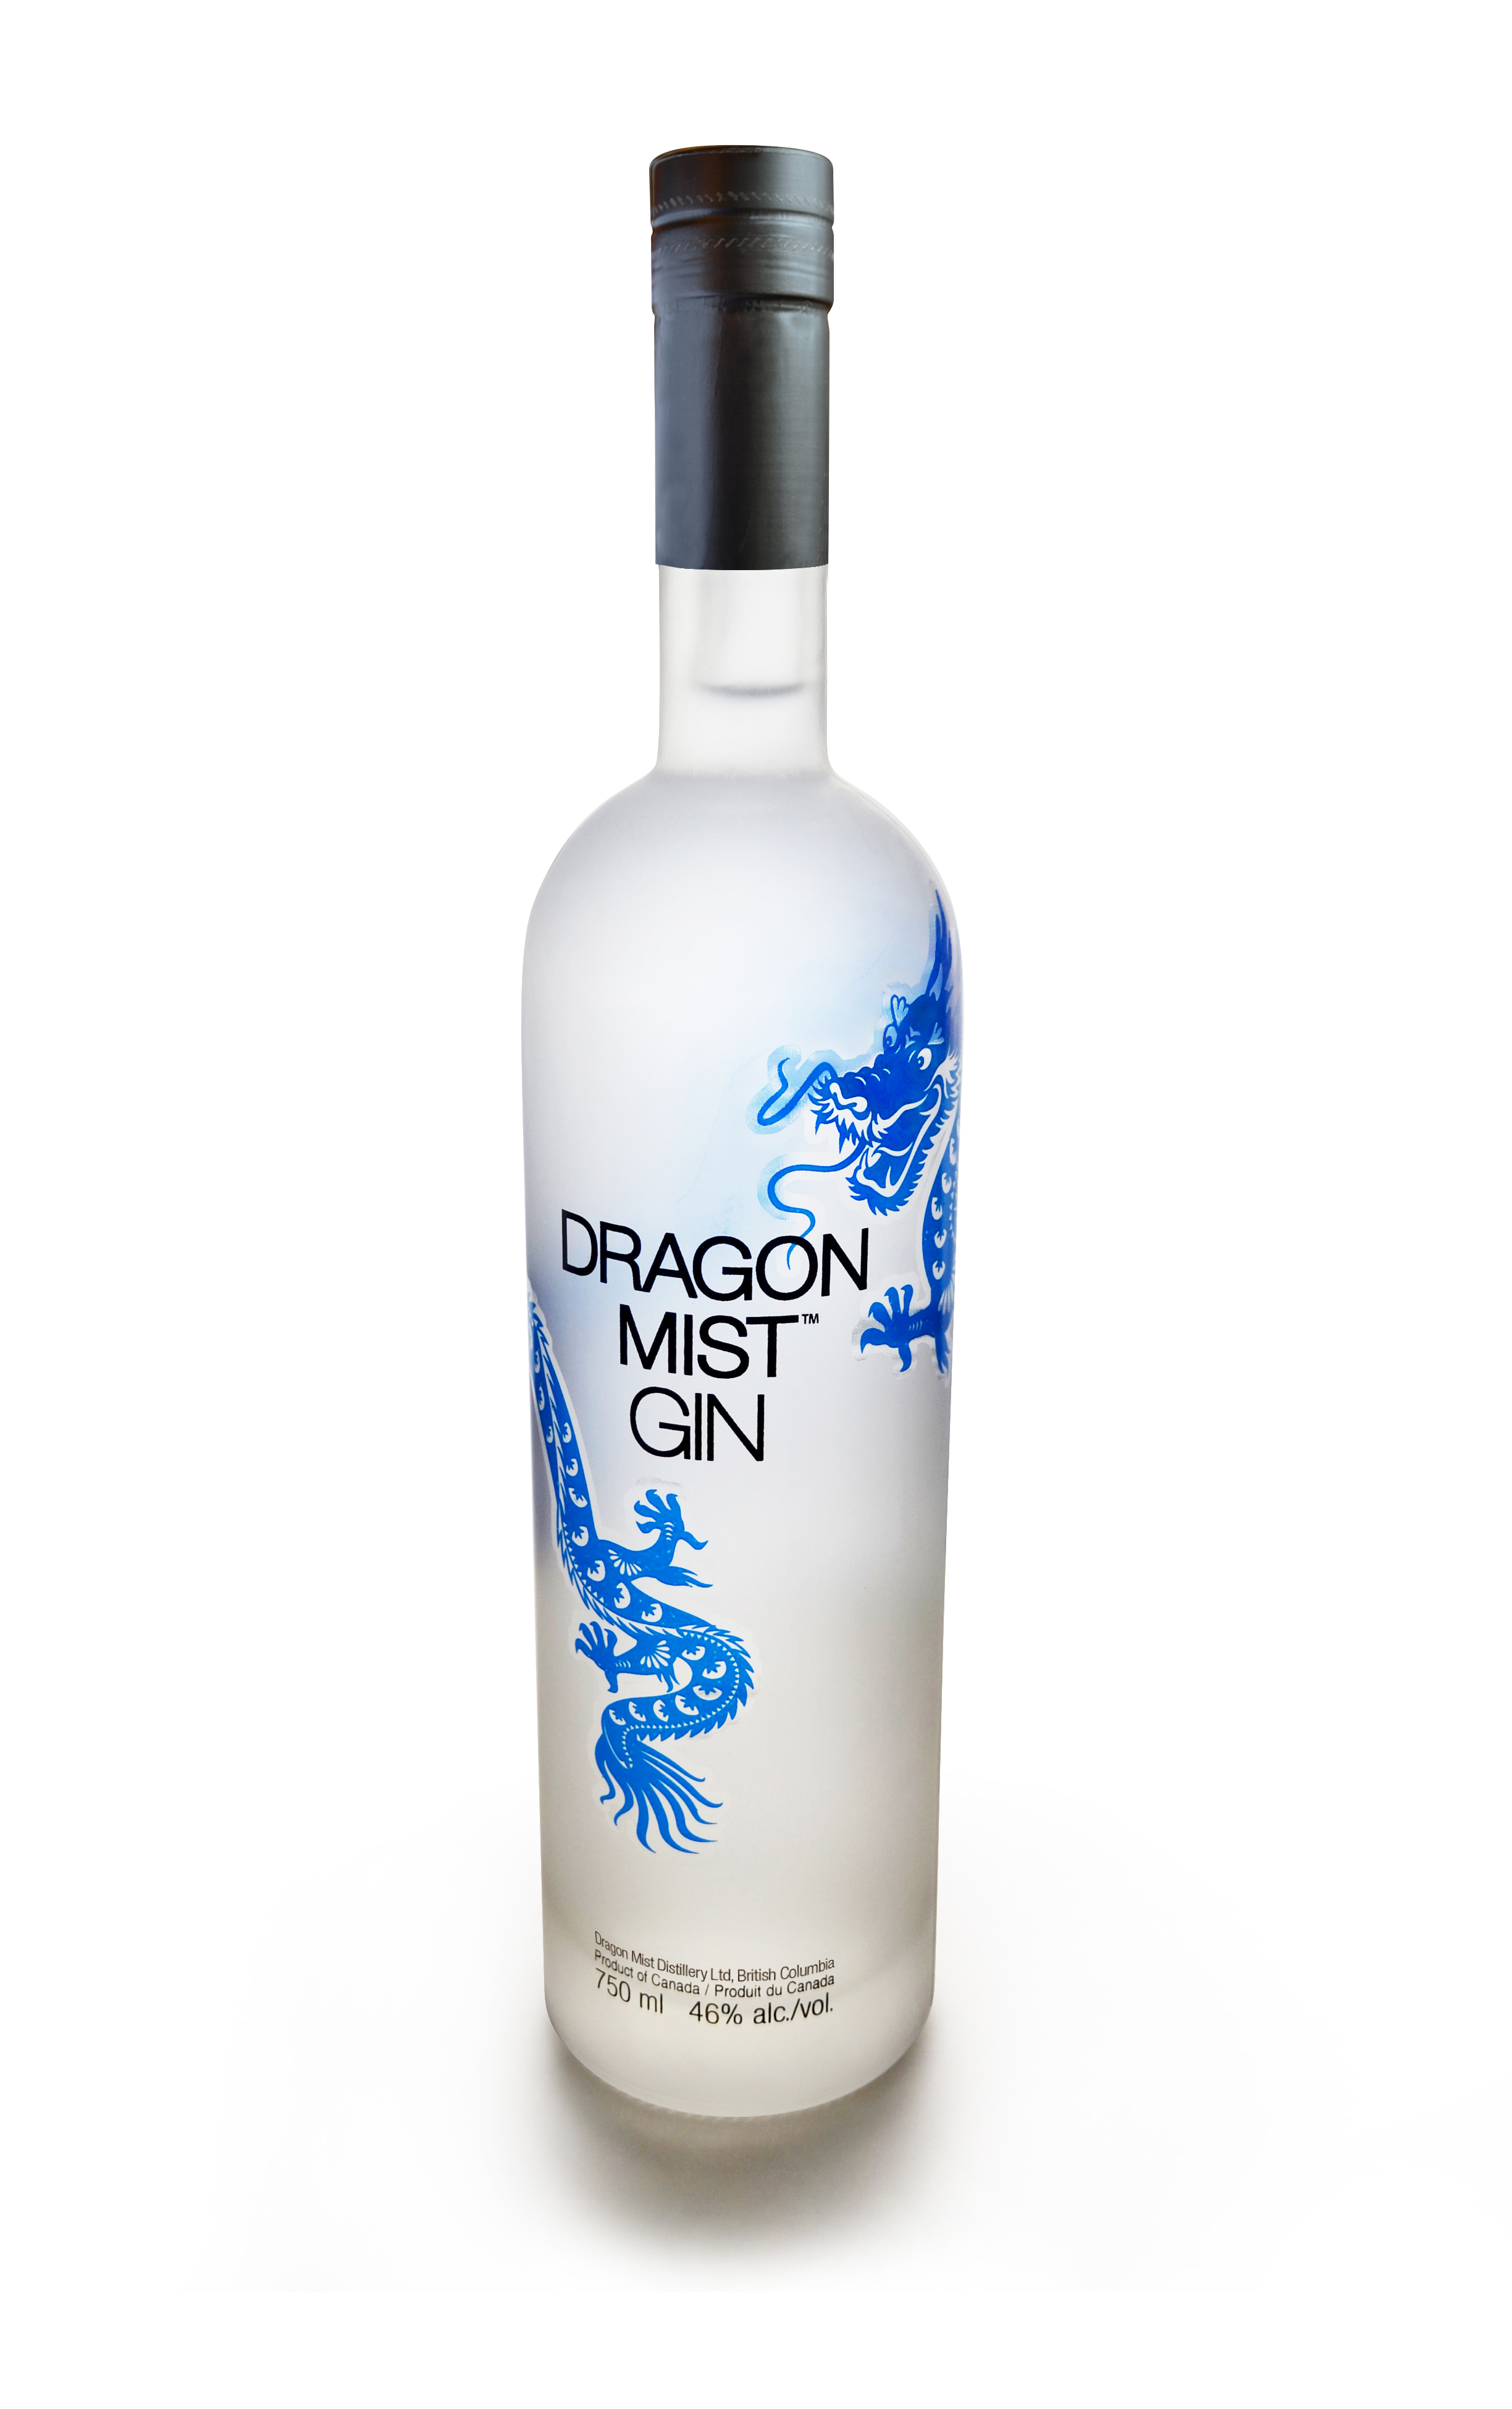 Dragon Mist Gin